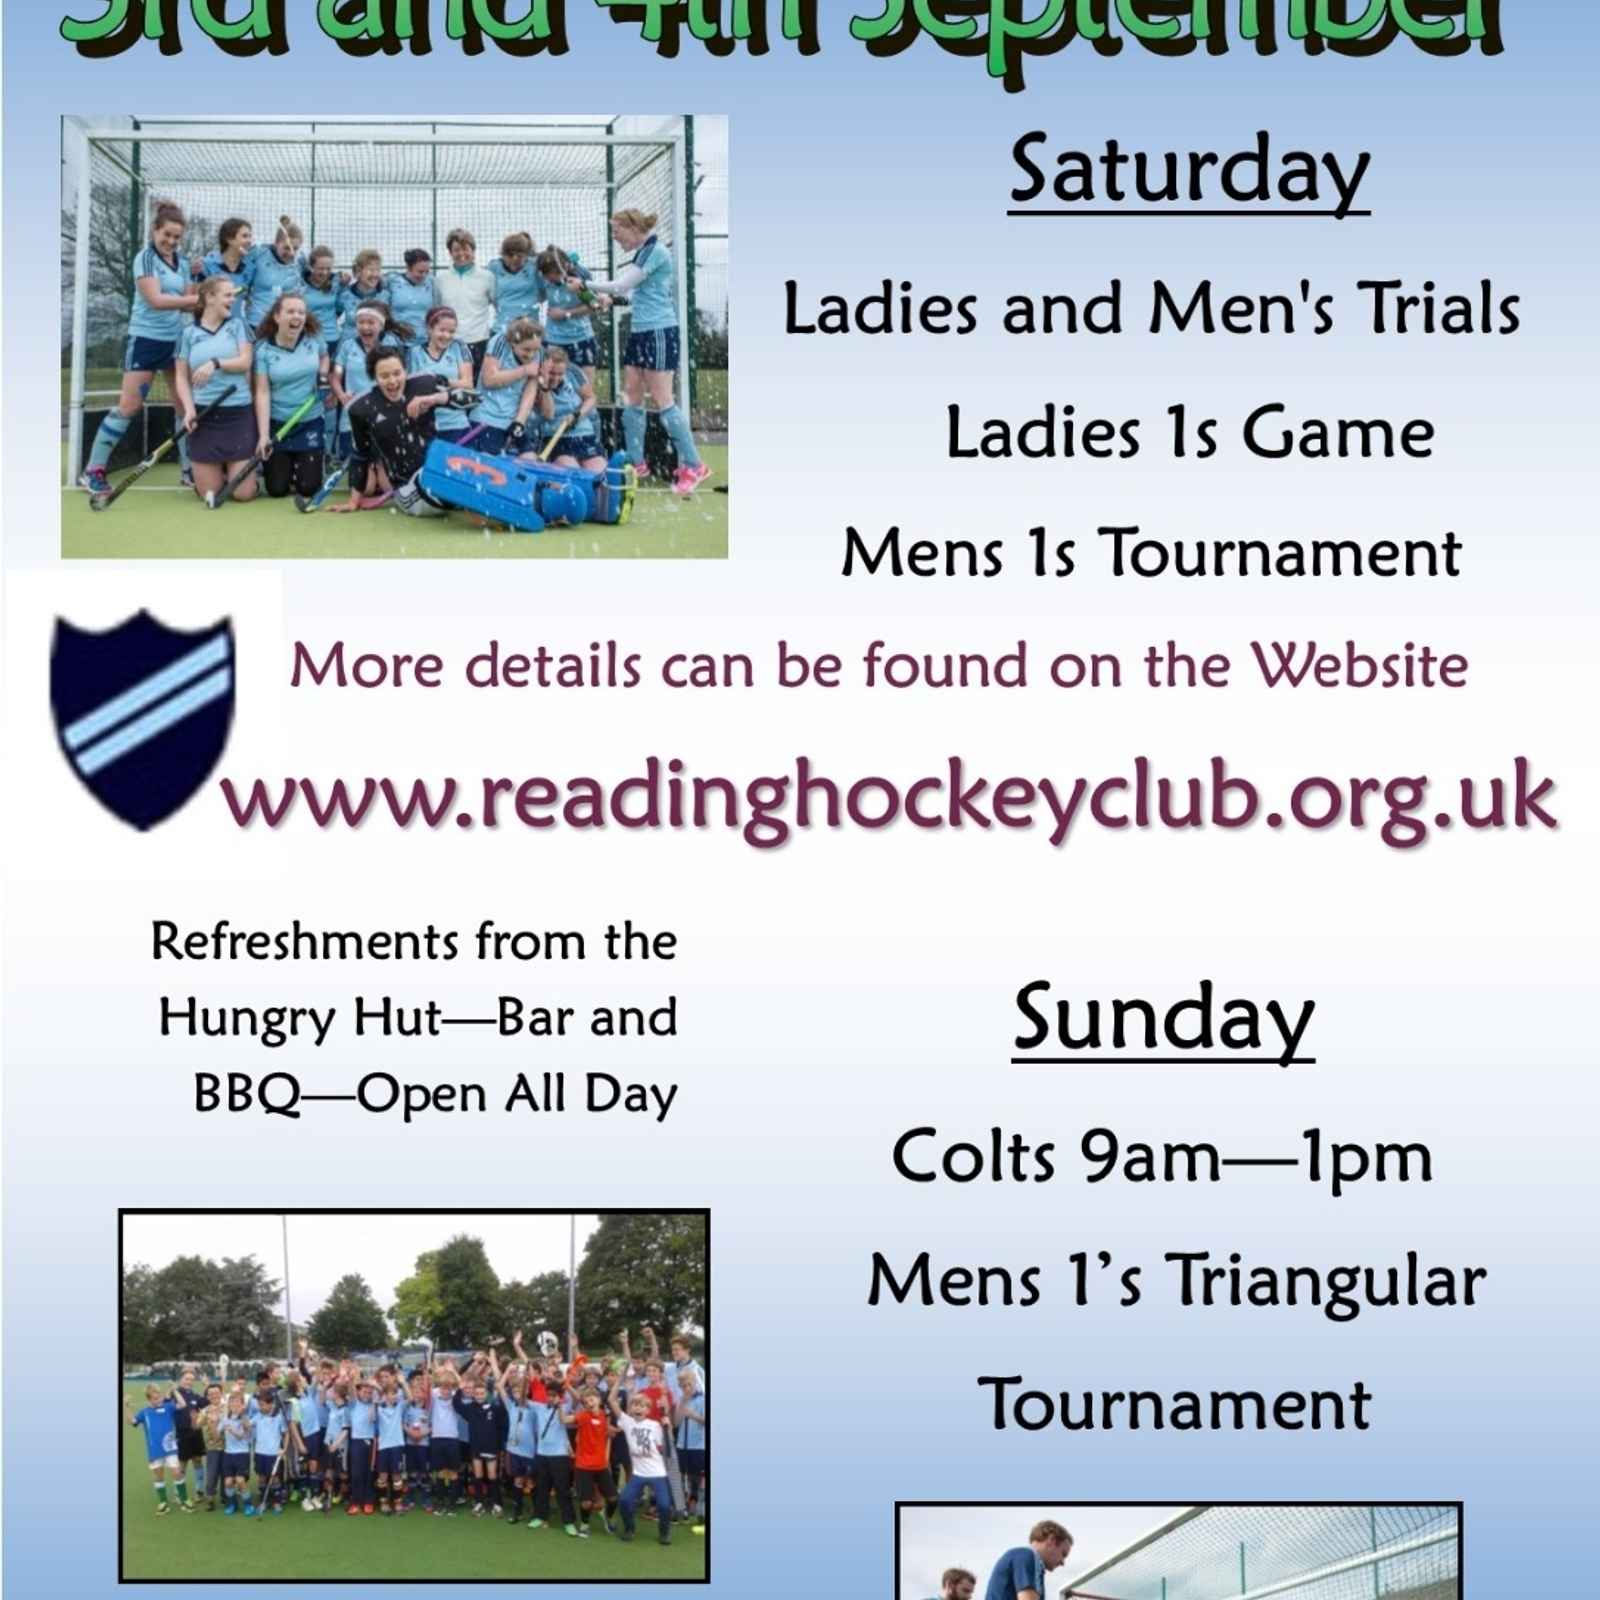 Club Weekend 3rd and 4th Sept